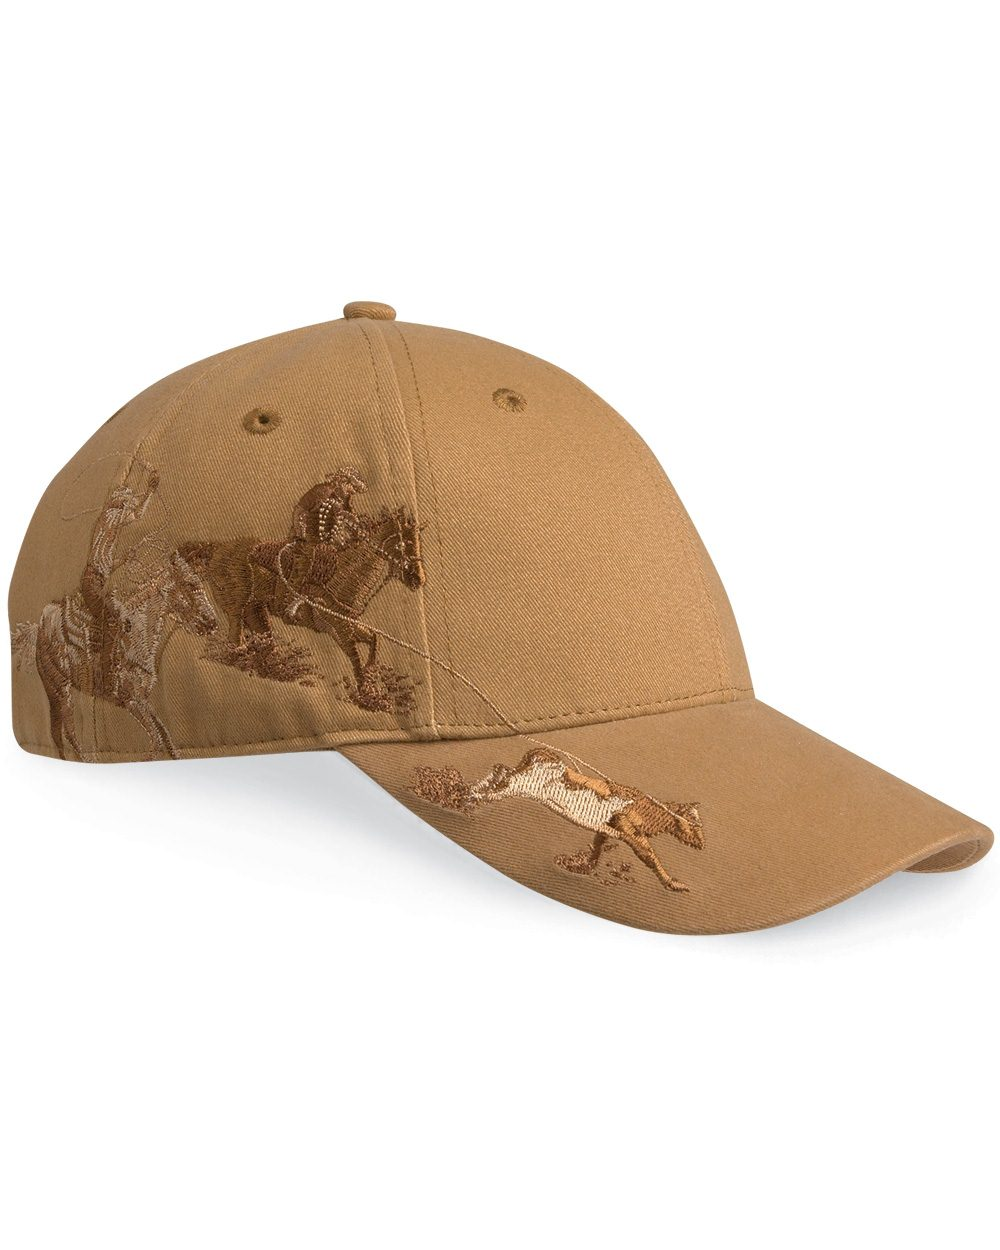 DRI DUCK Wildlife Series Team Roping Cap - 3263